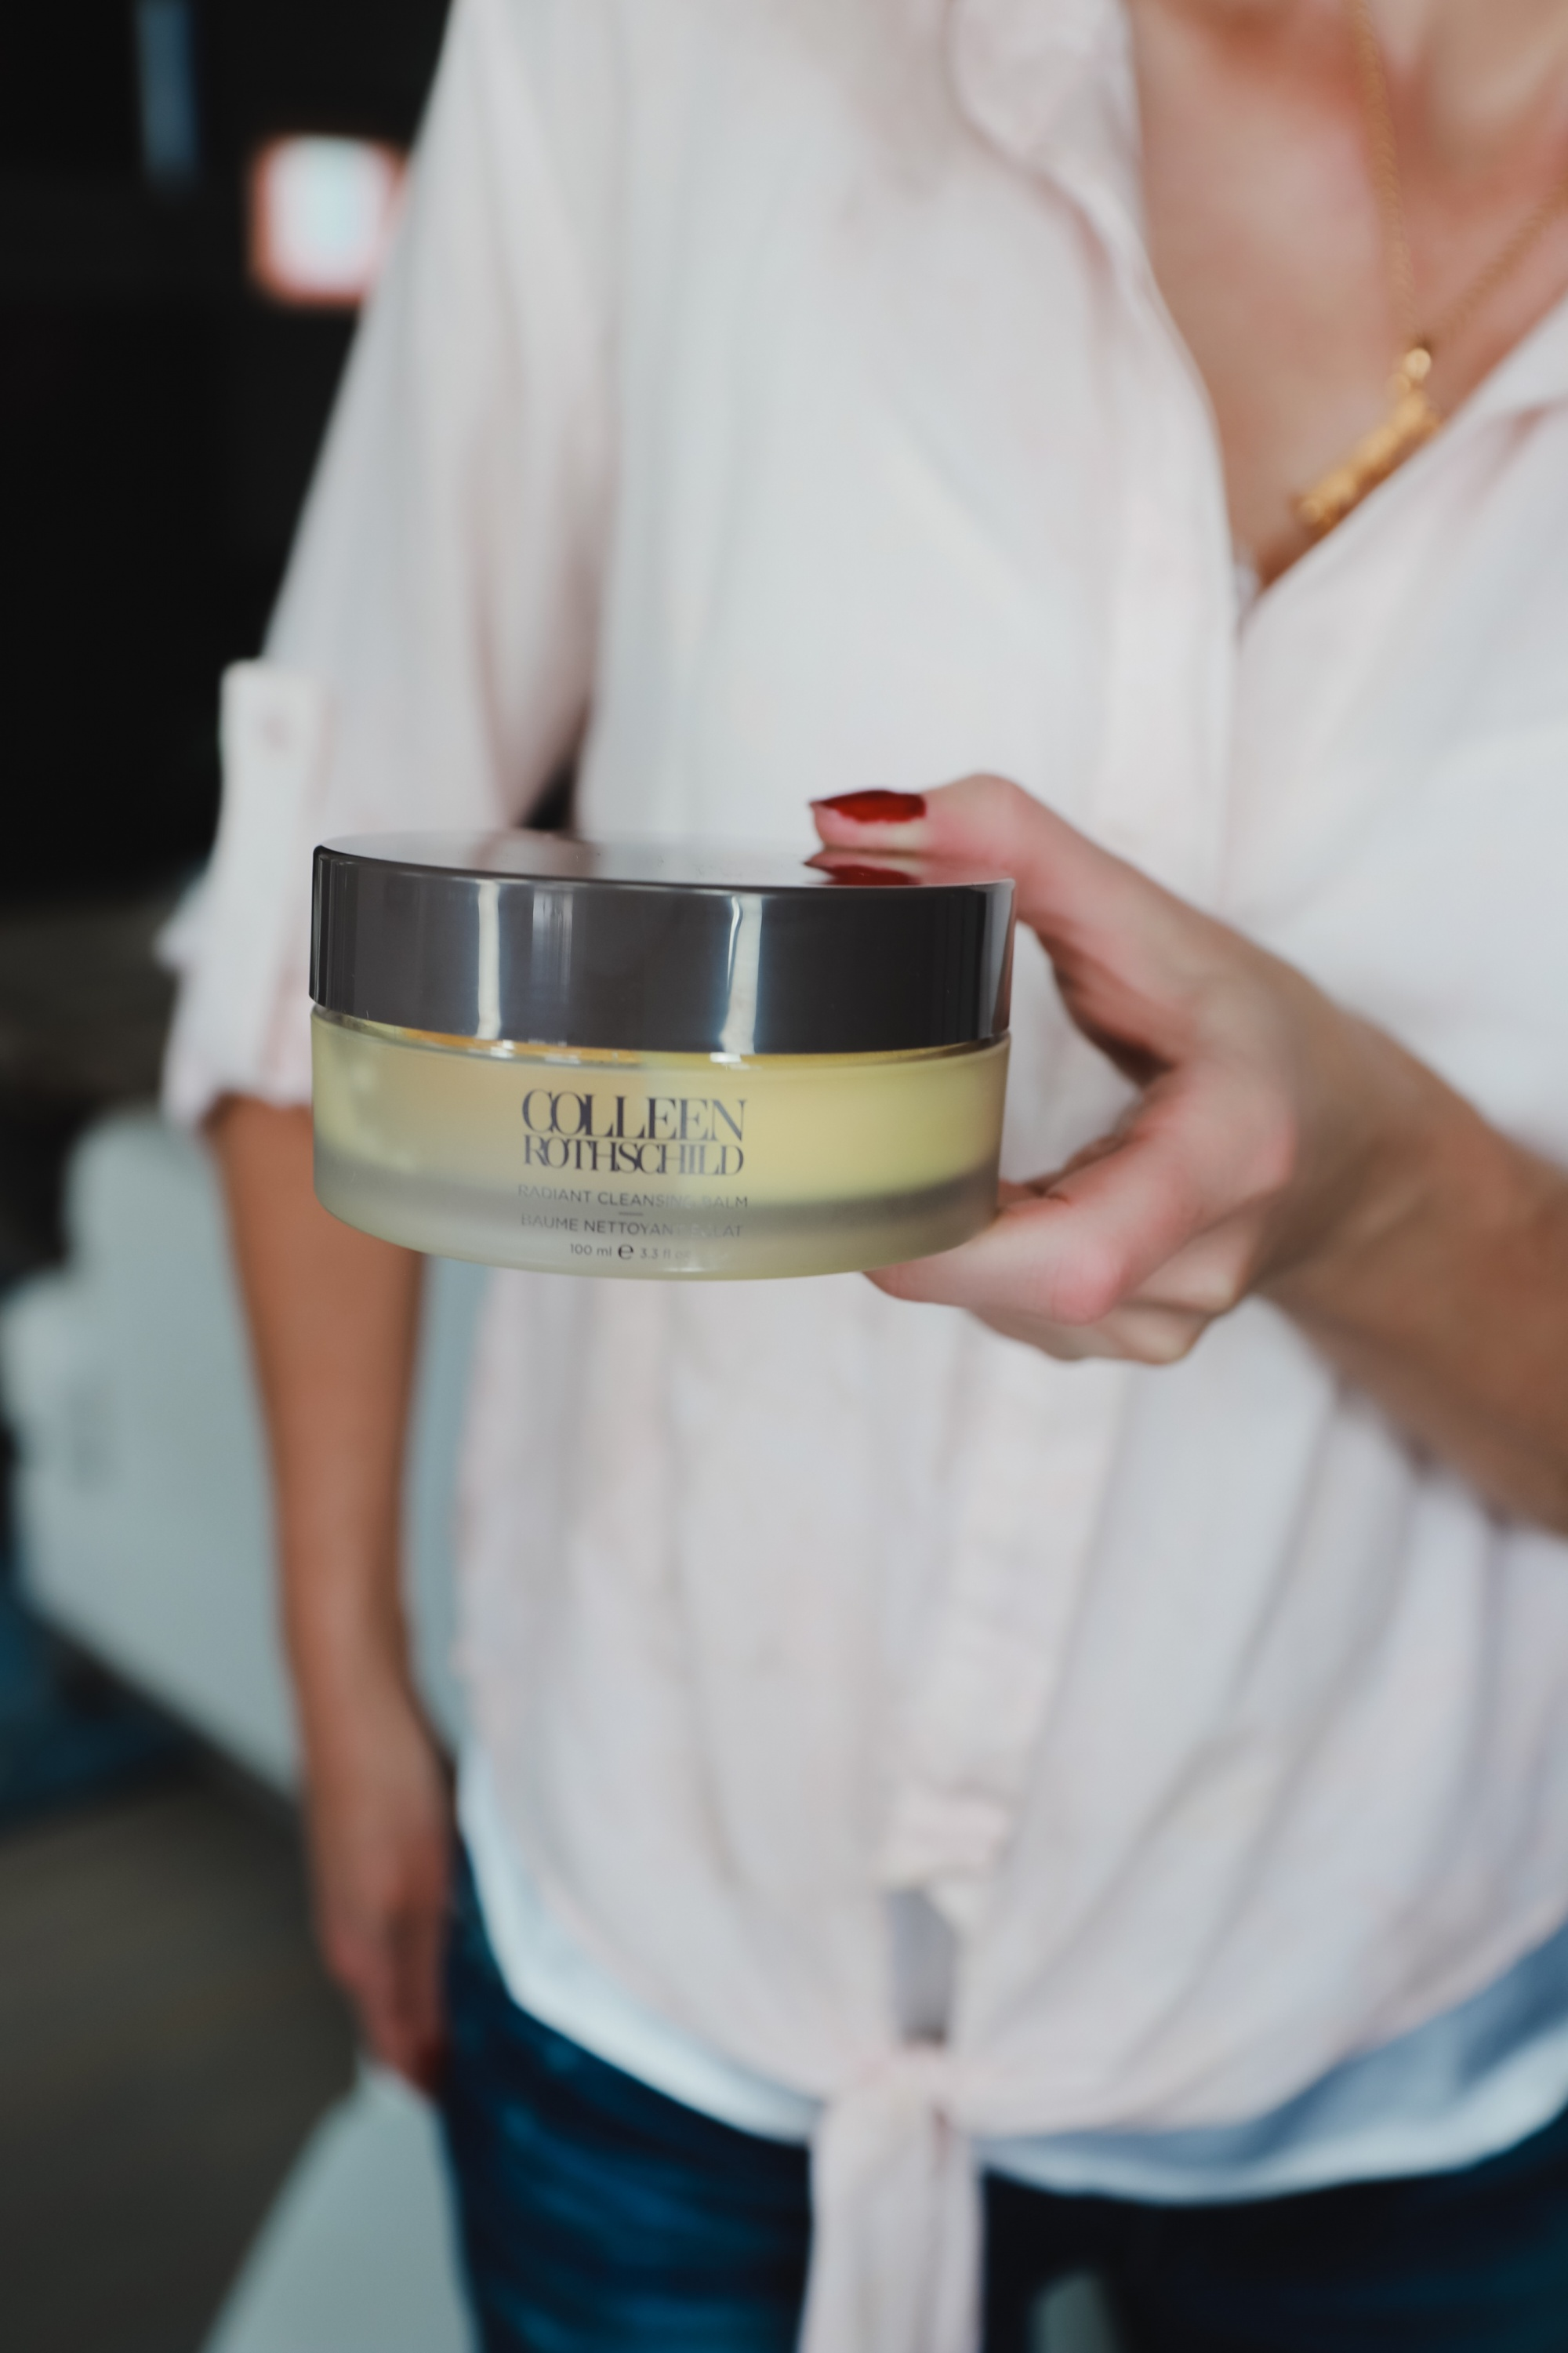 Favorite Skincare Brand, Erin Busbee of Busbee Style holding the Colleen Rothschild Radiant Cleansing Balm in her home in Telluride, Colorado